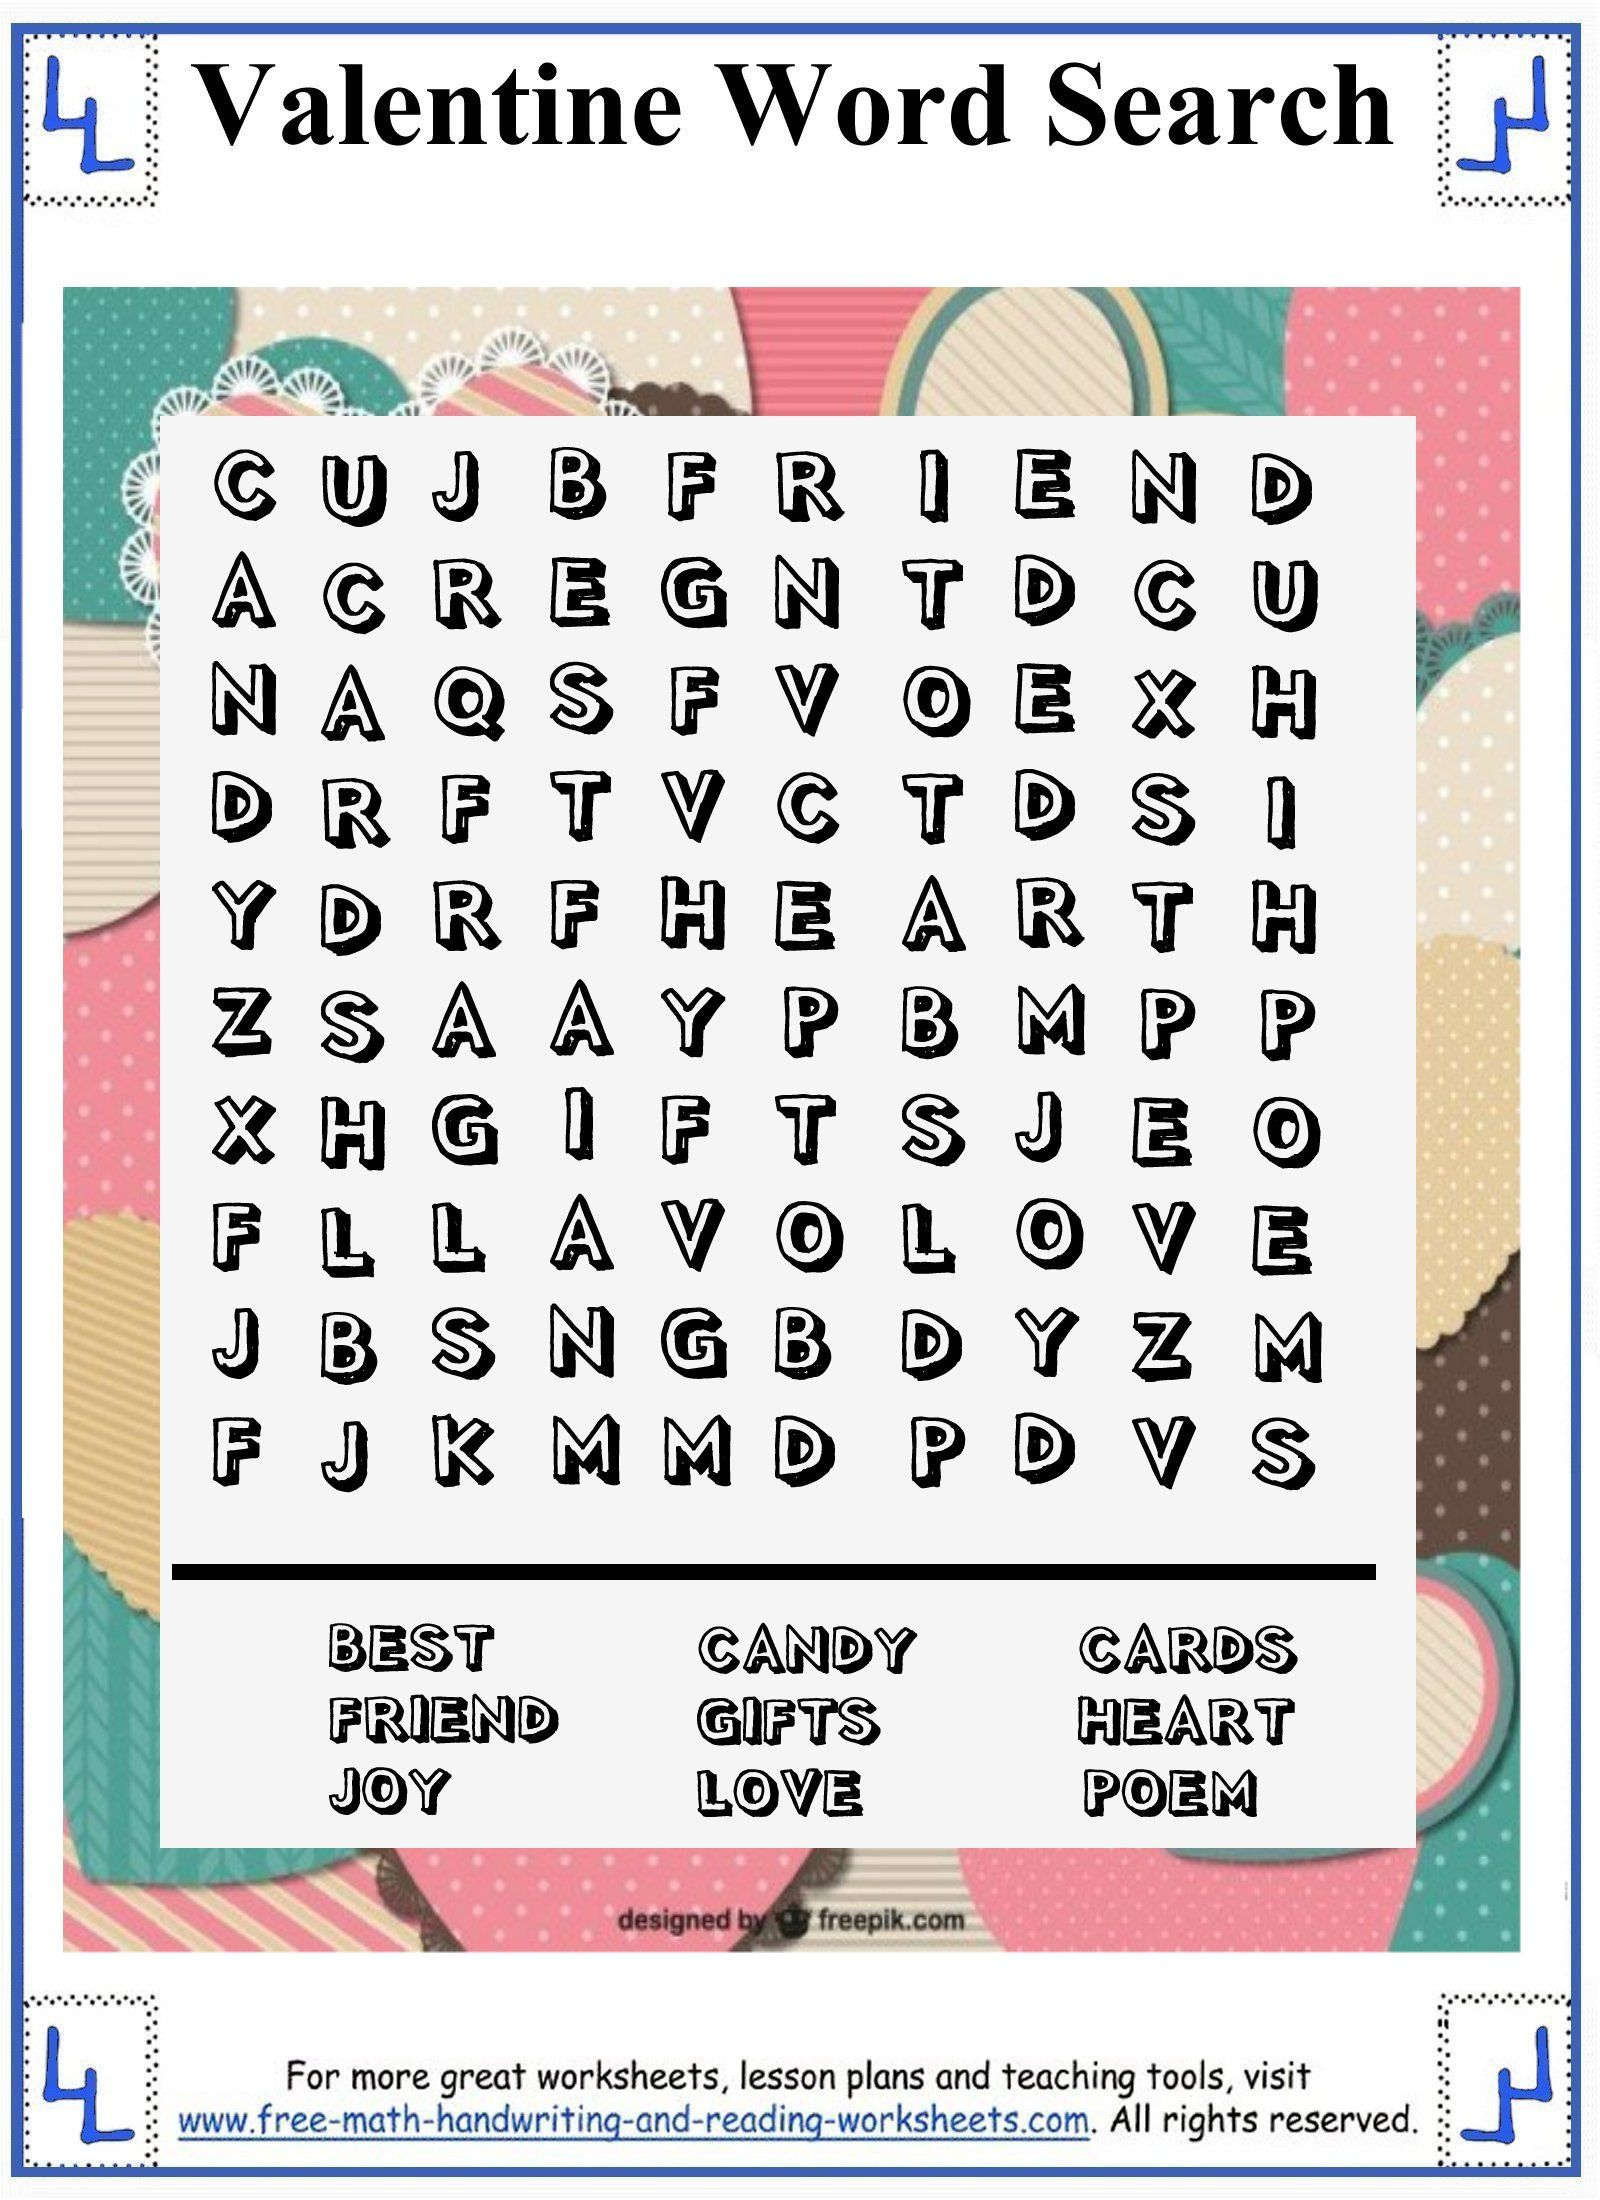 Valentine Word Search - Printable Puzzles - 10x10 wordsearch grid ...